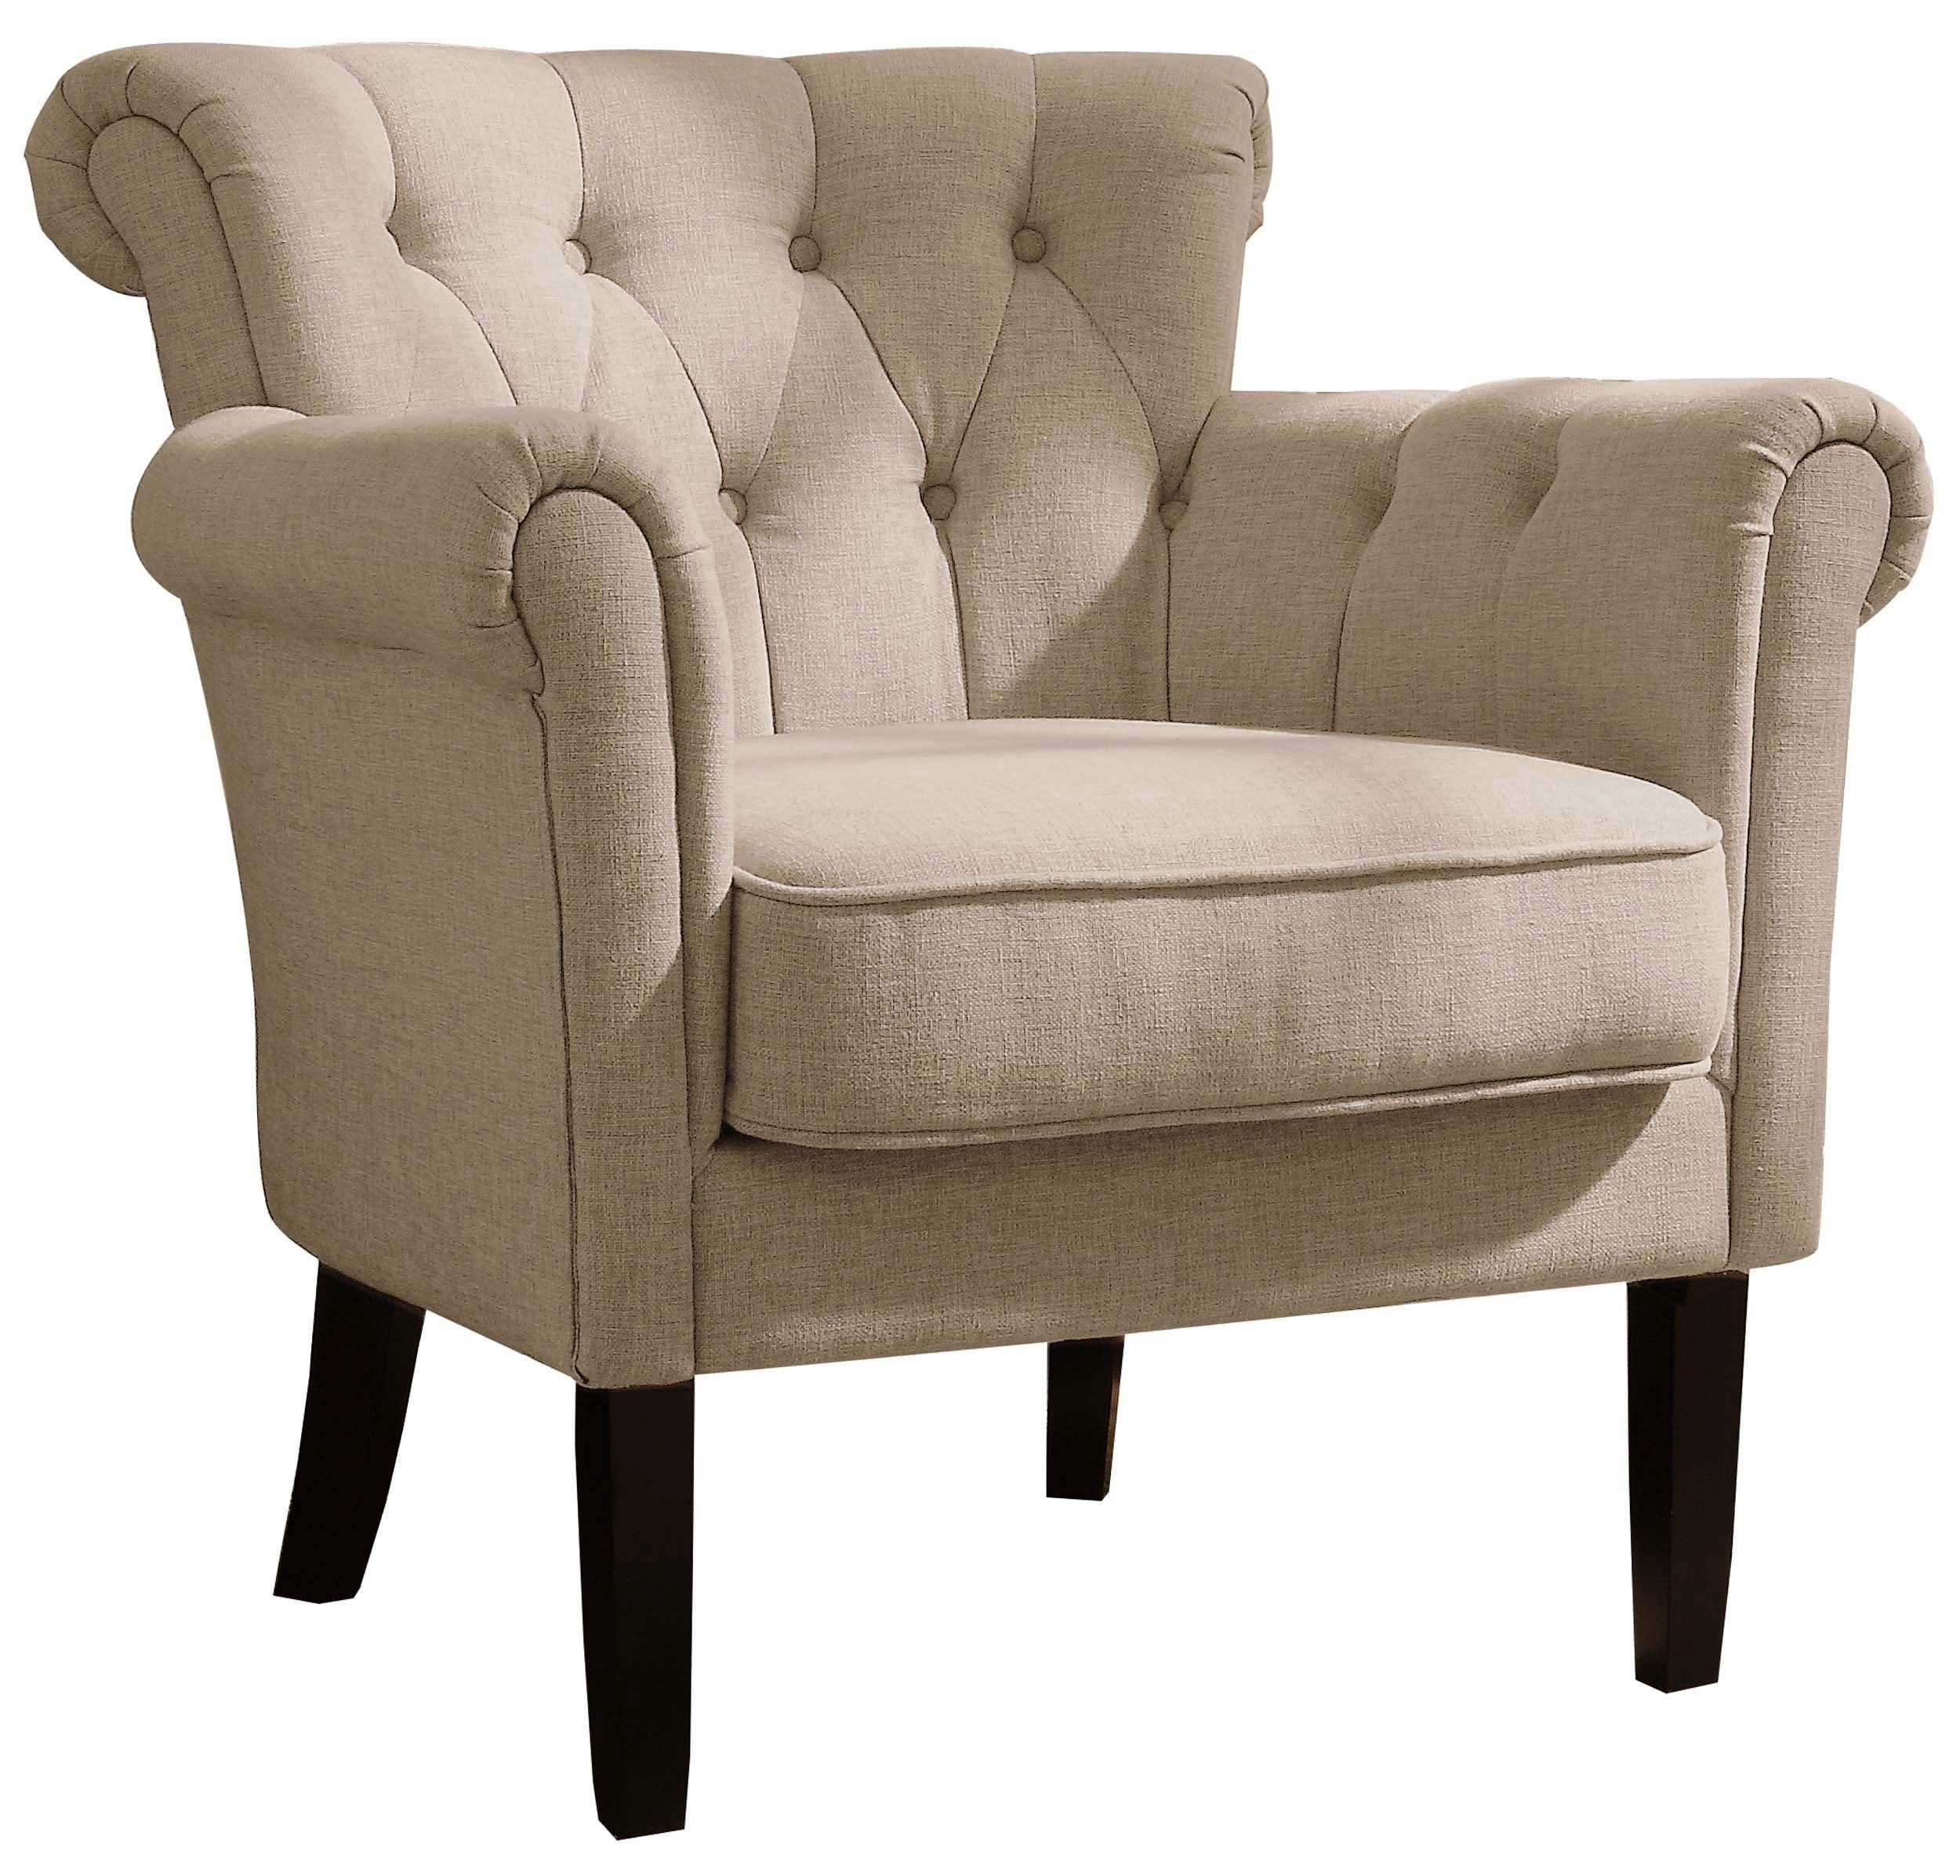 Homelegance Barlowe Fabric Flared Accent Chair, Khaki/Brown - Contemporary Arm Chair features panel roll-arm and decorative tufted back Fabric:  80% polyester + 20% cotton No sag seat construction and fire-retardant foam padded seat cushion for long lasting comfort - living-room-furniture, living-room, accent-chairs - 91BLSgzGc3L -